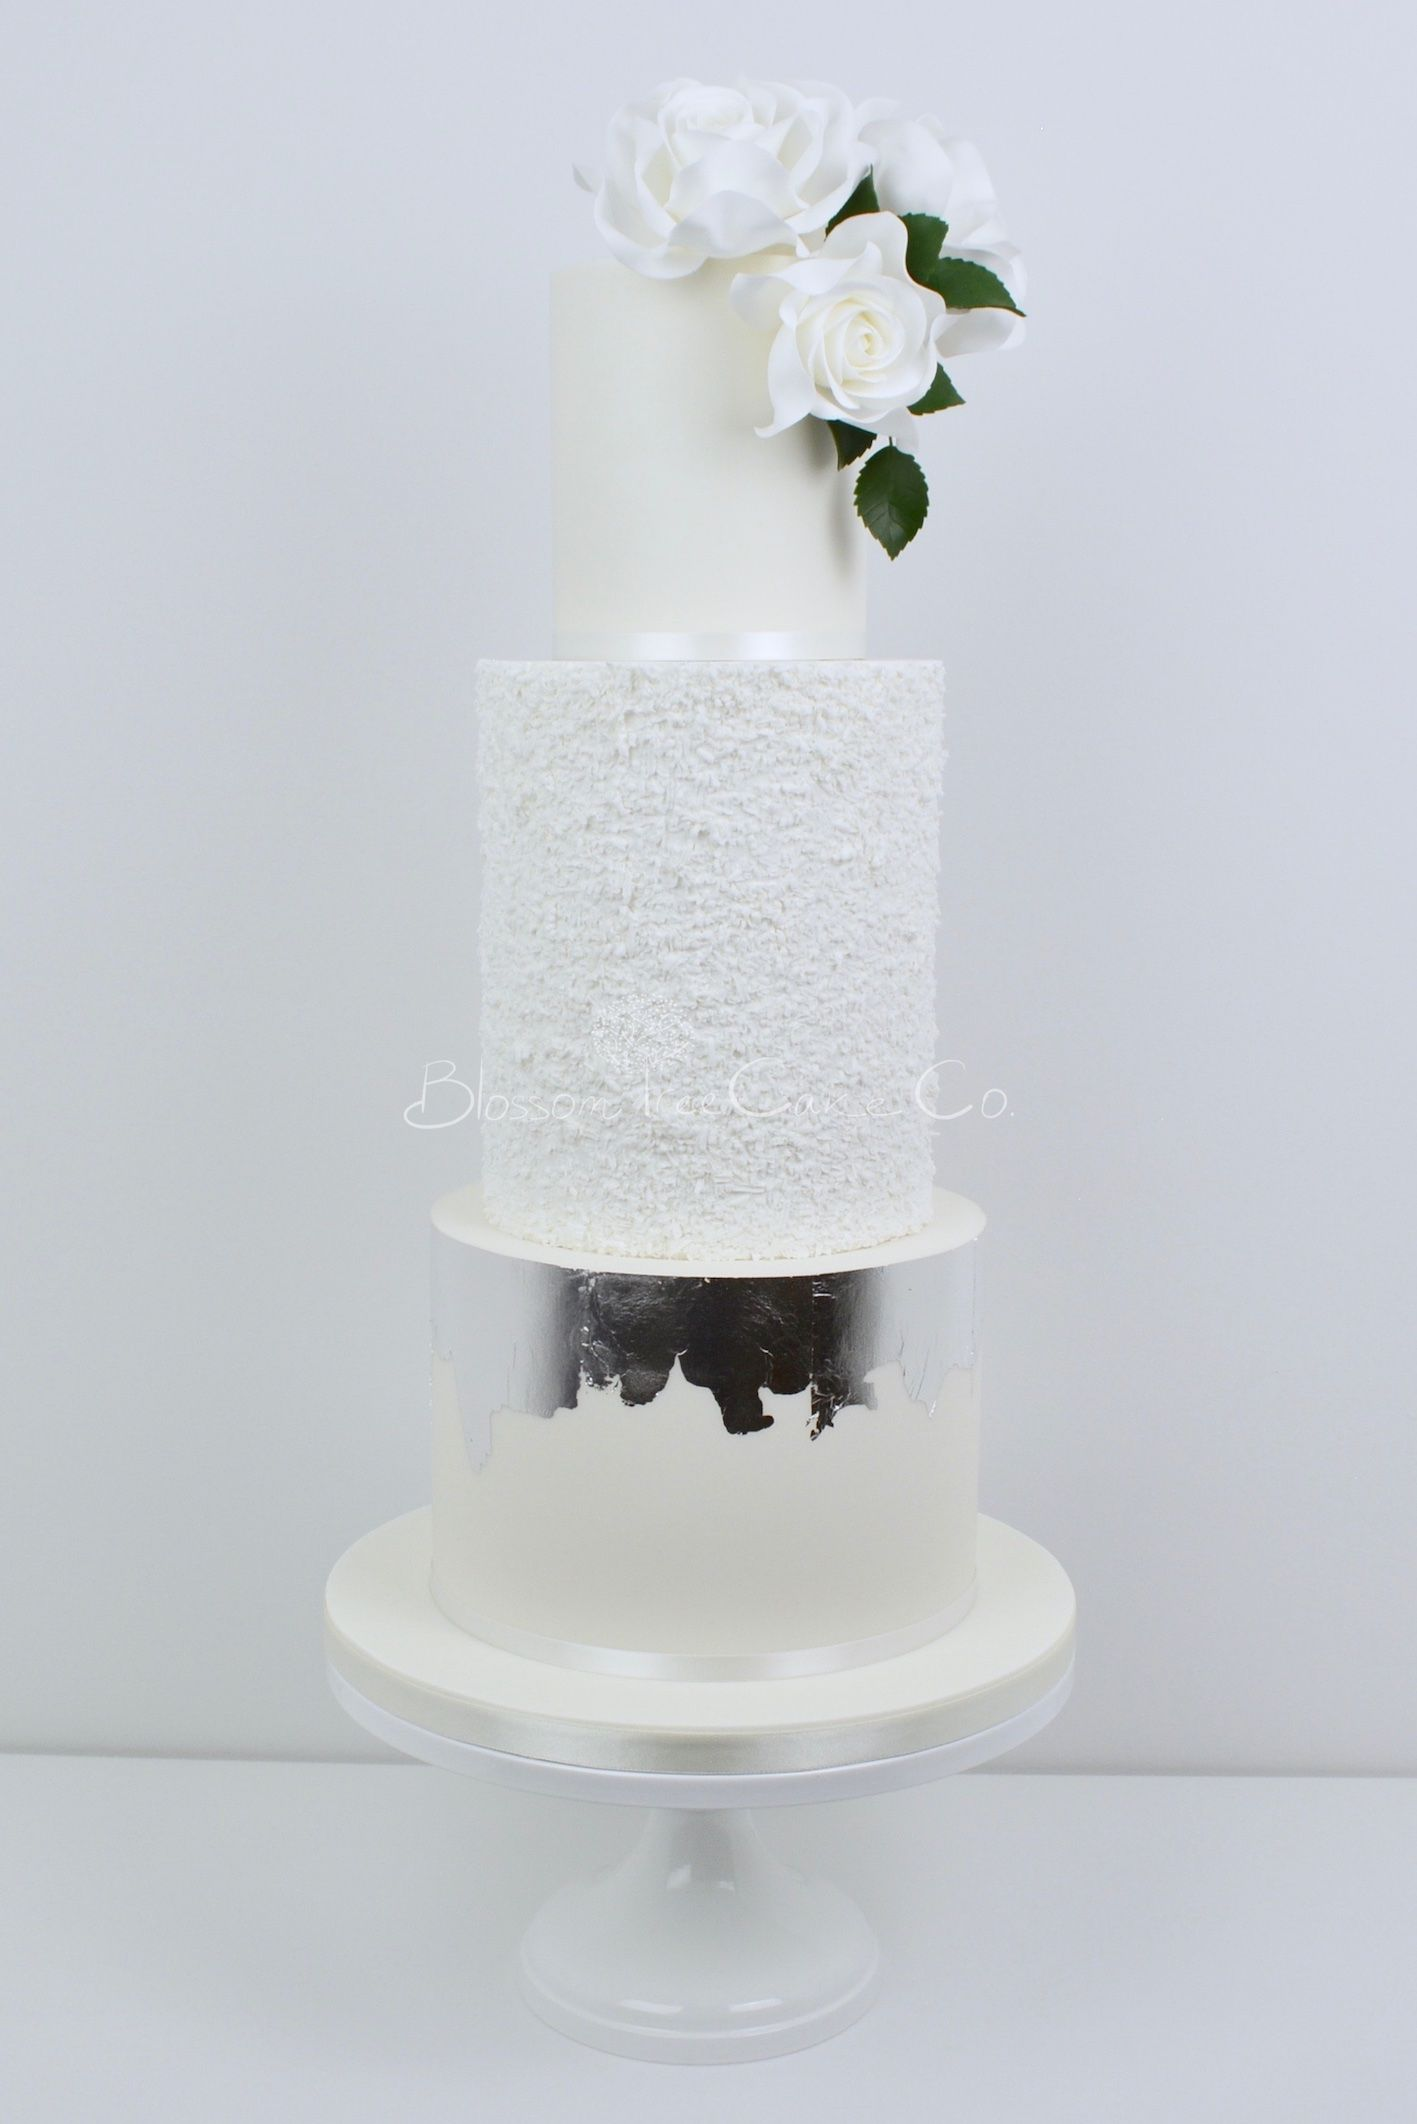 White roses and silver wedding cake by blossom tree cake company